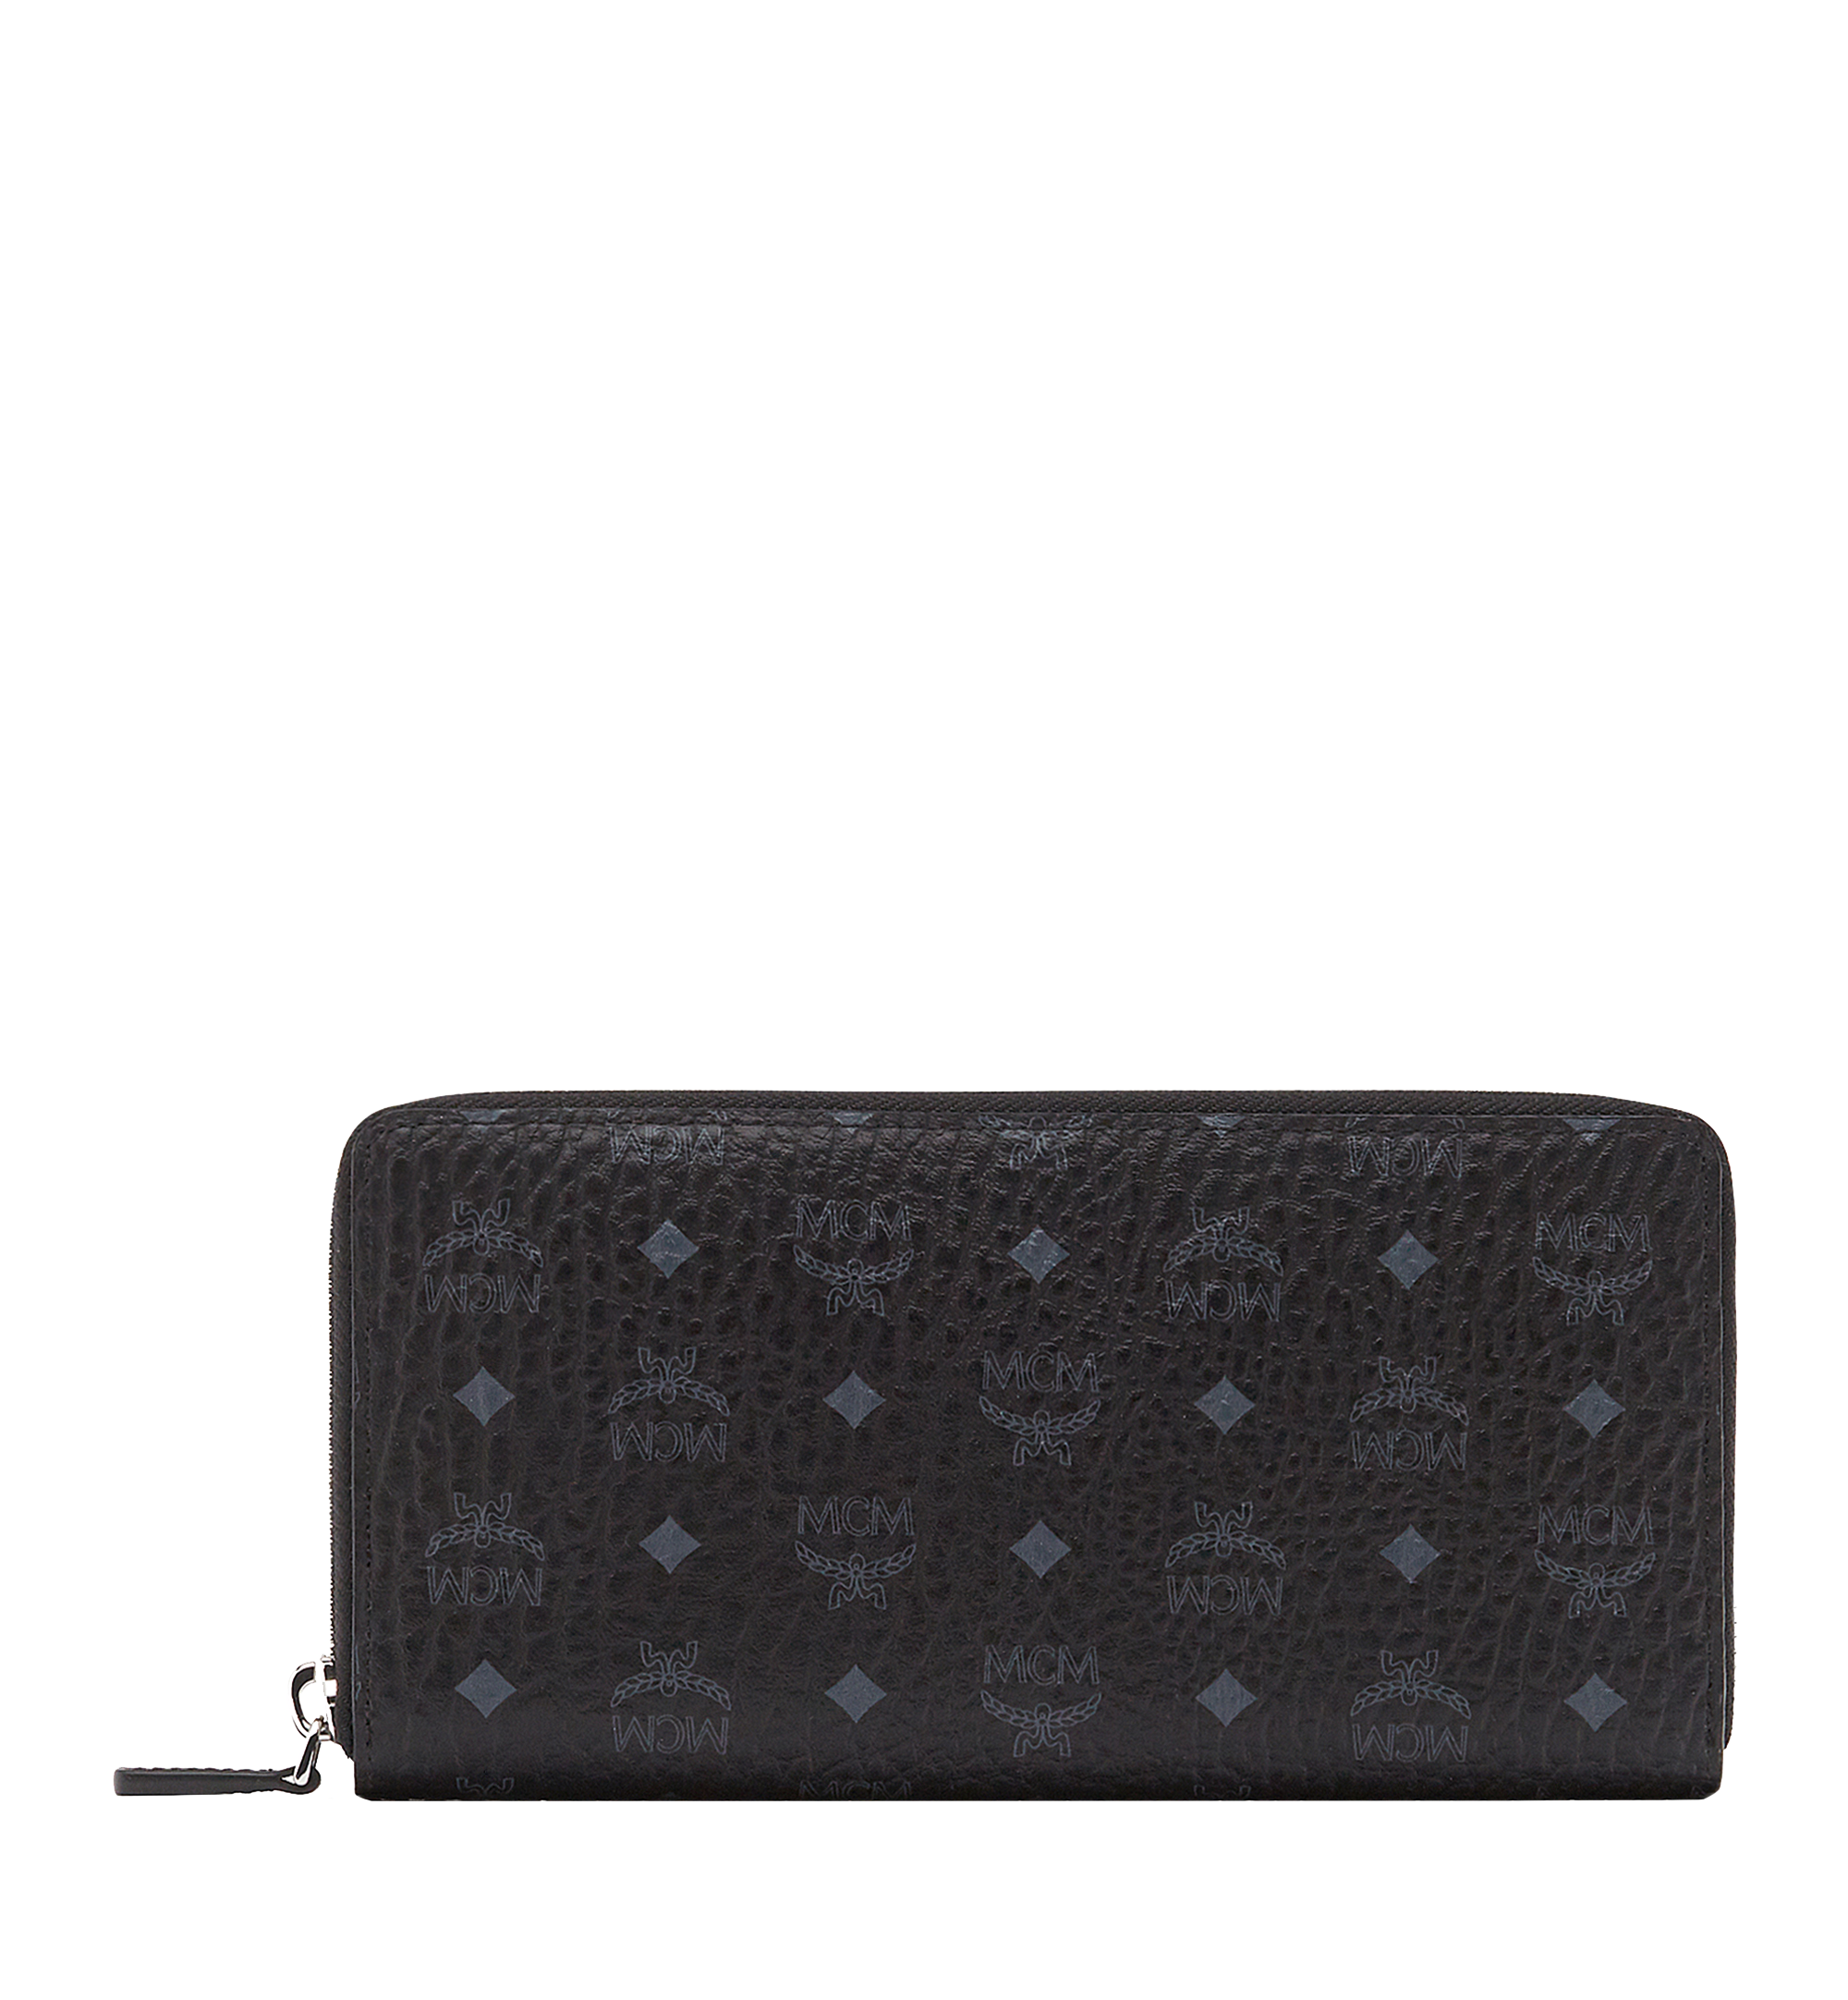 MCM Zip Around Wallet in Visetos Original Black MXL8SVI92BK001 Alternate View 1